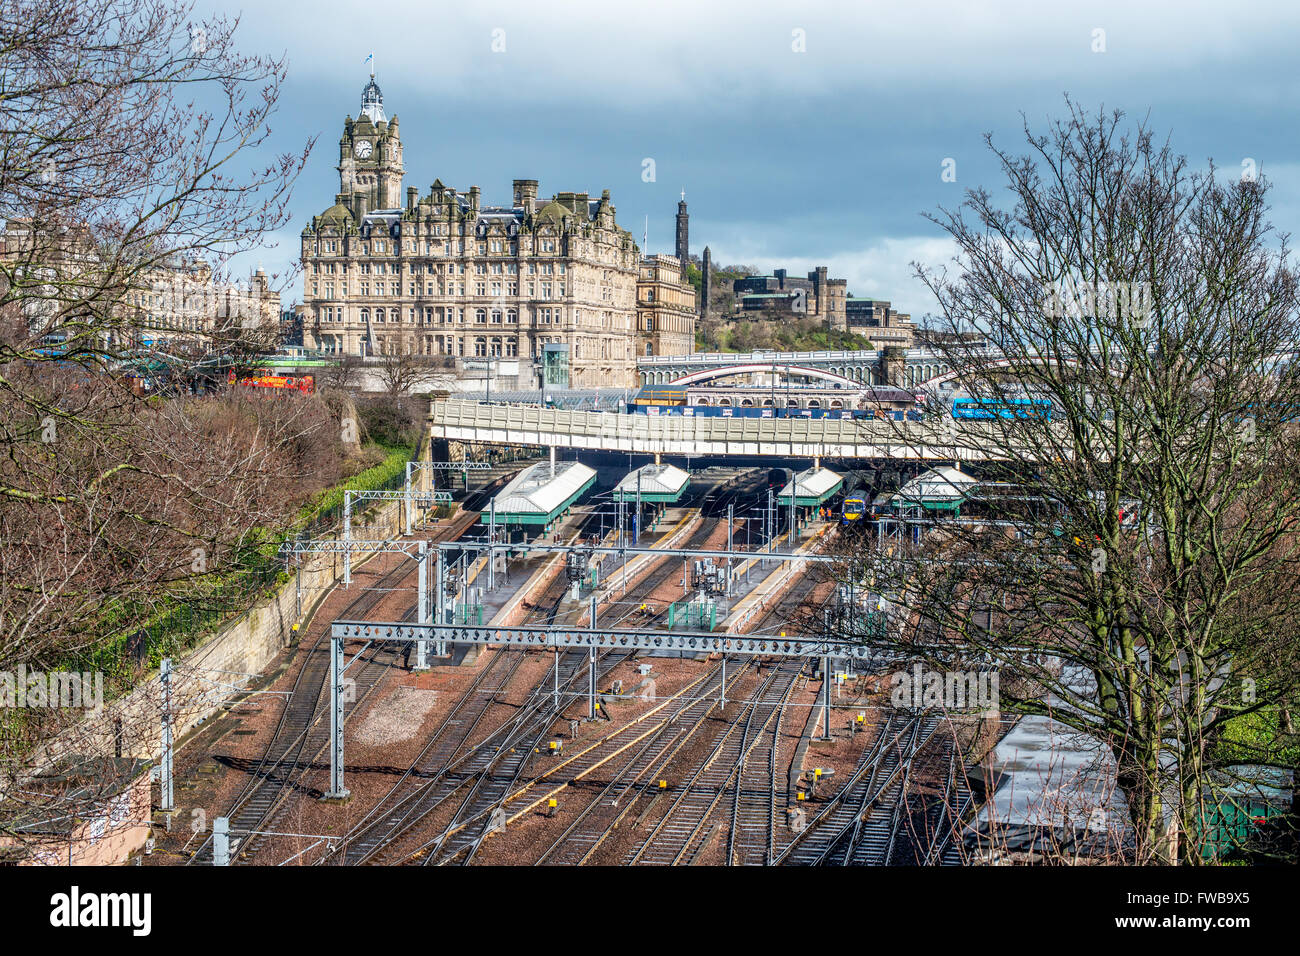 Tracks leading to Edinburgh Waverley railway station in Edinburgh, Scotland - Stock Image